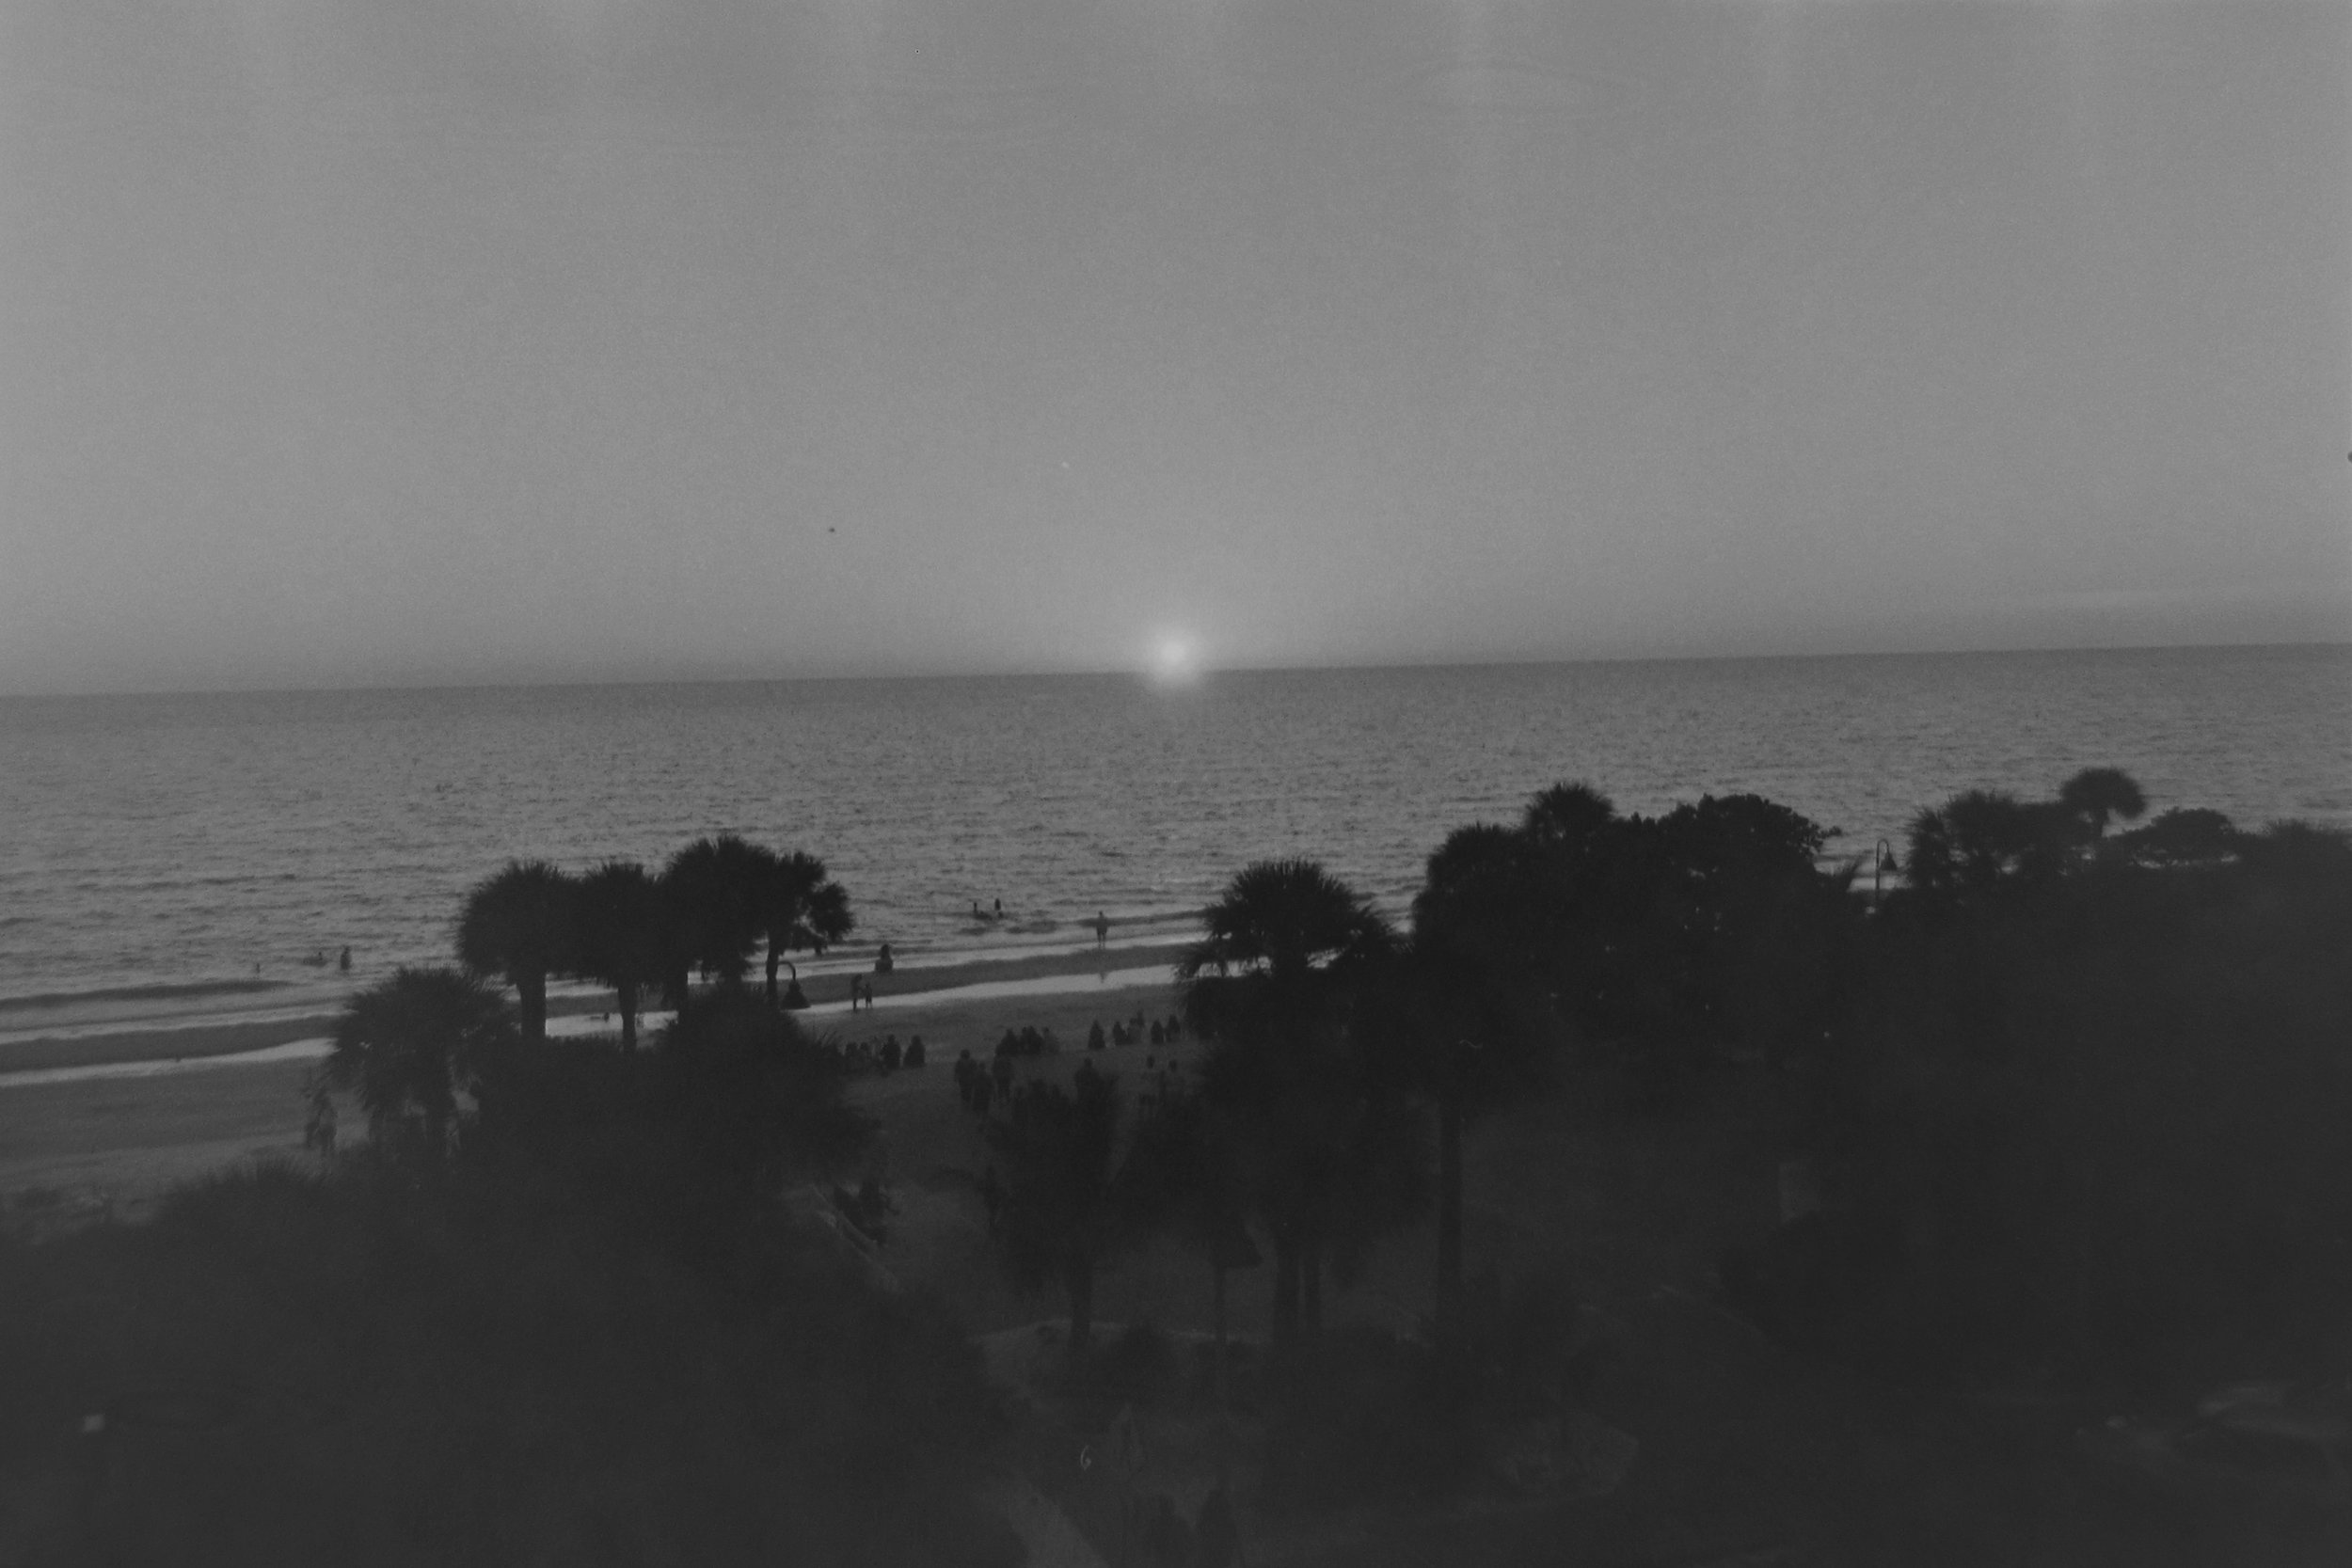 sunset on st pete beach.jpg